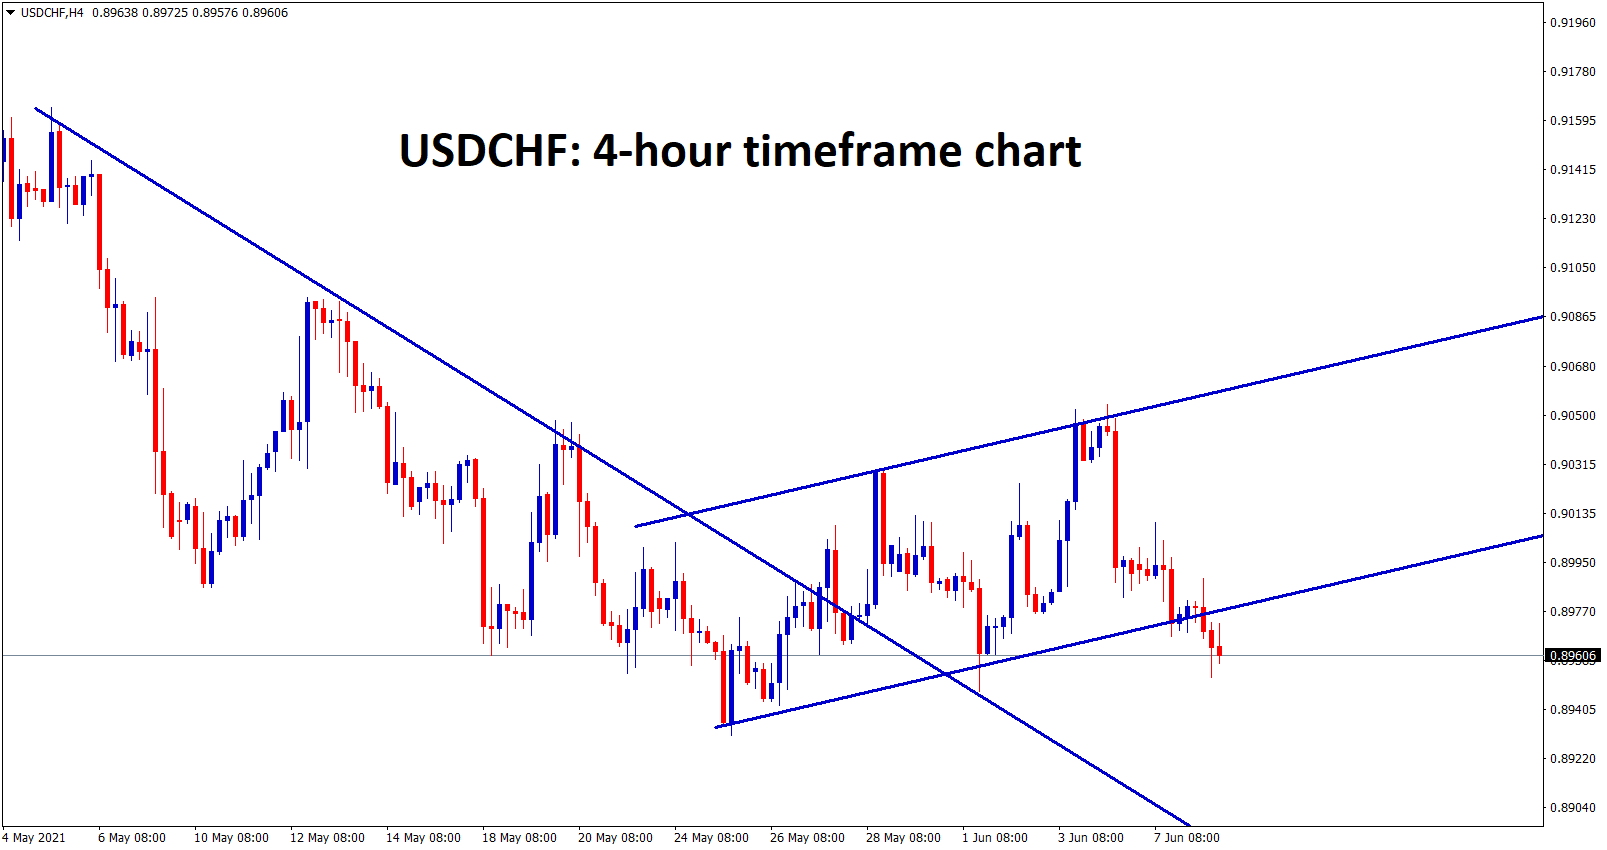 USDCHF is consolidating at the support zone